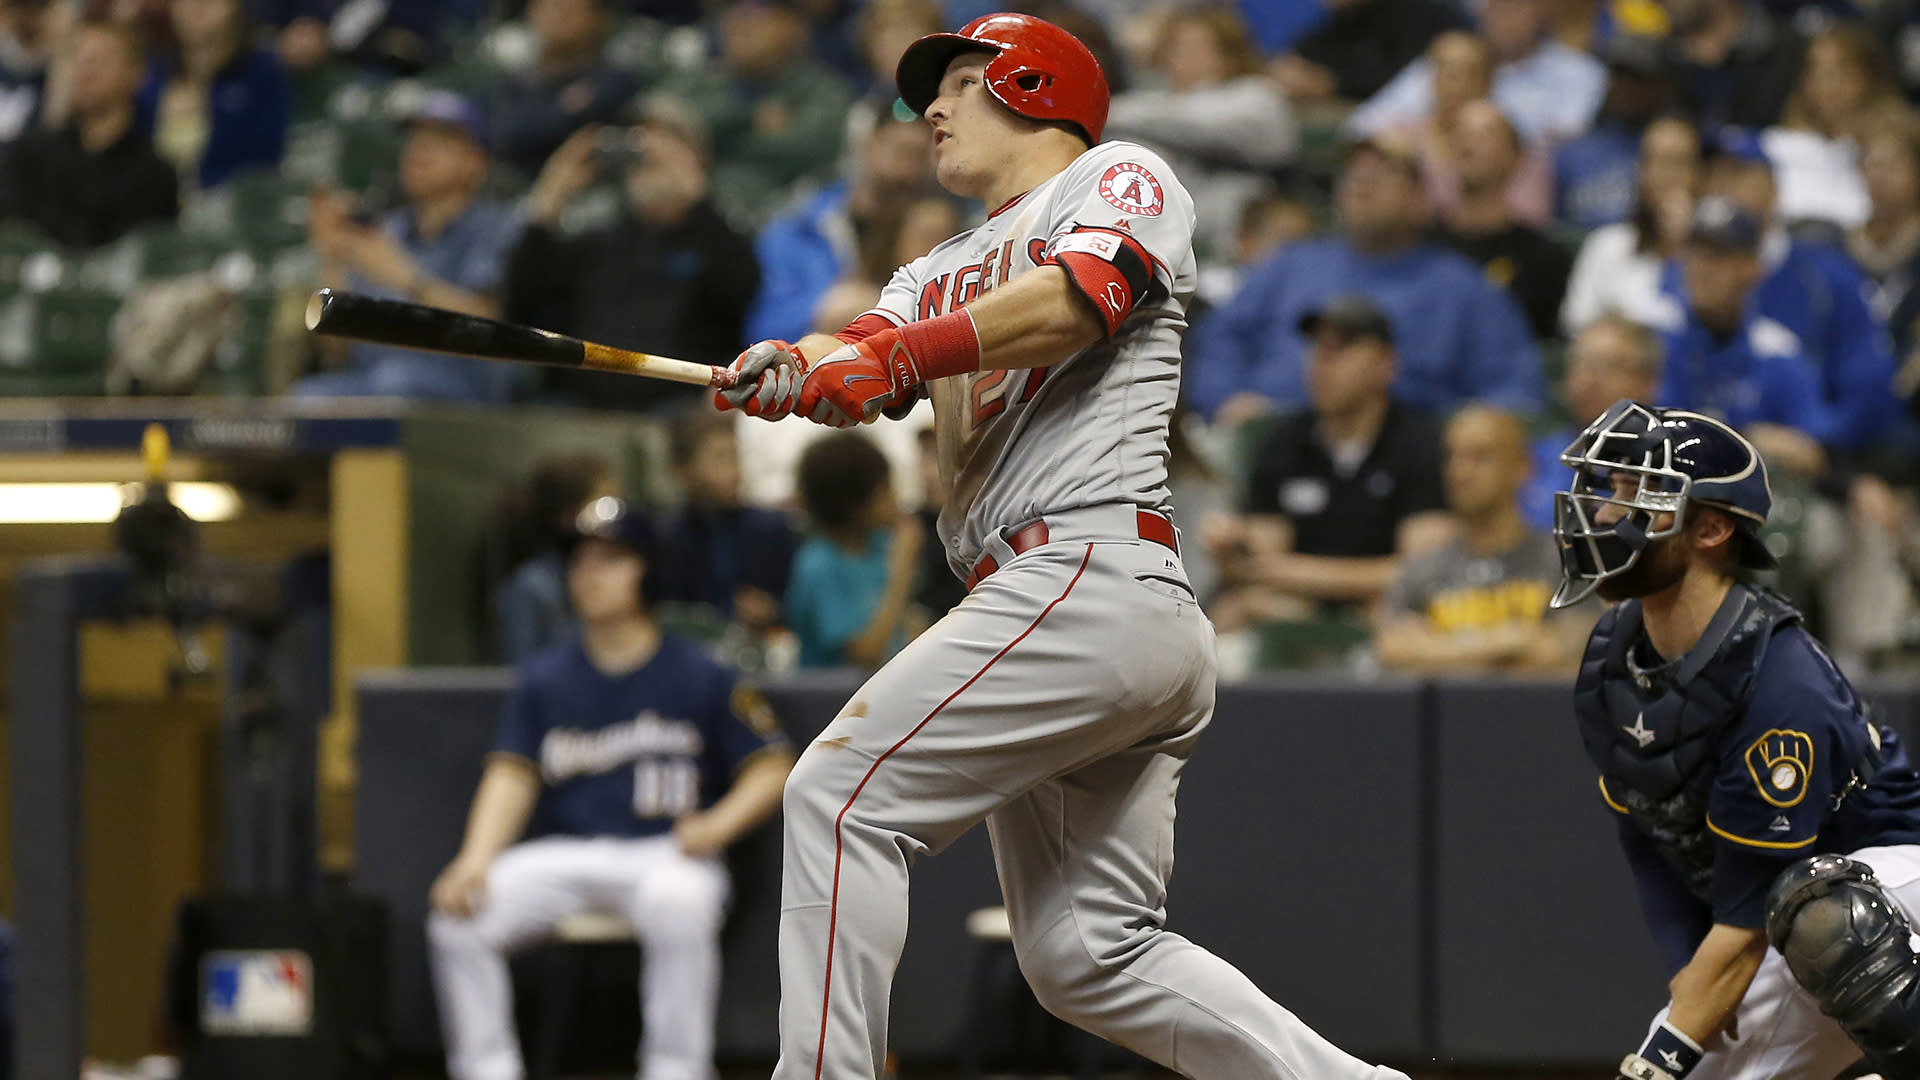 Trout stars in Angels loss, Wainwright goes deep